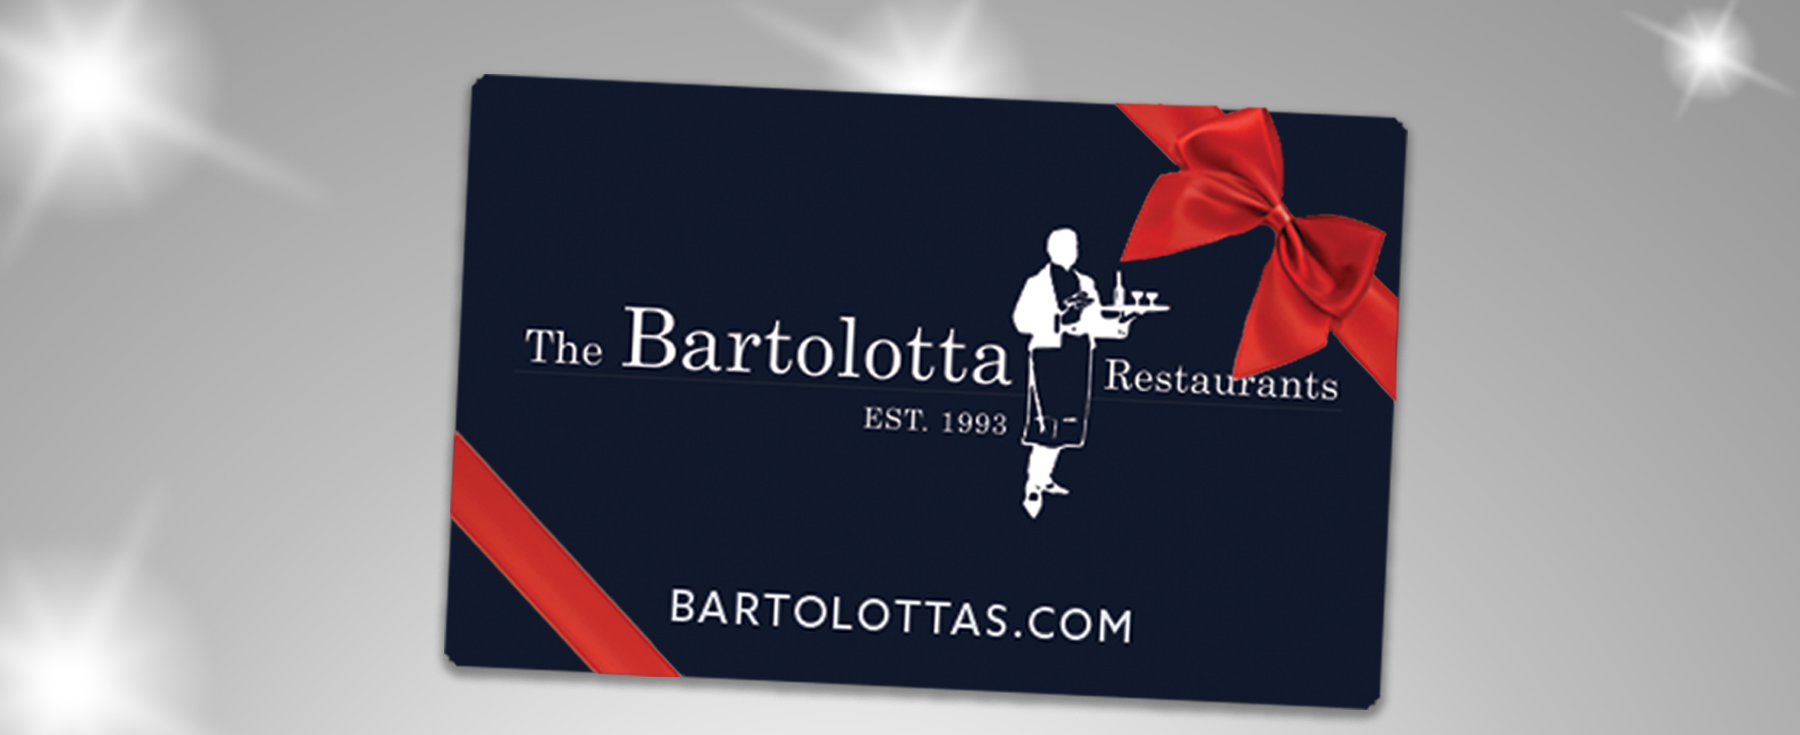 Bartolotta Gift Cards for the Holidays